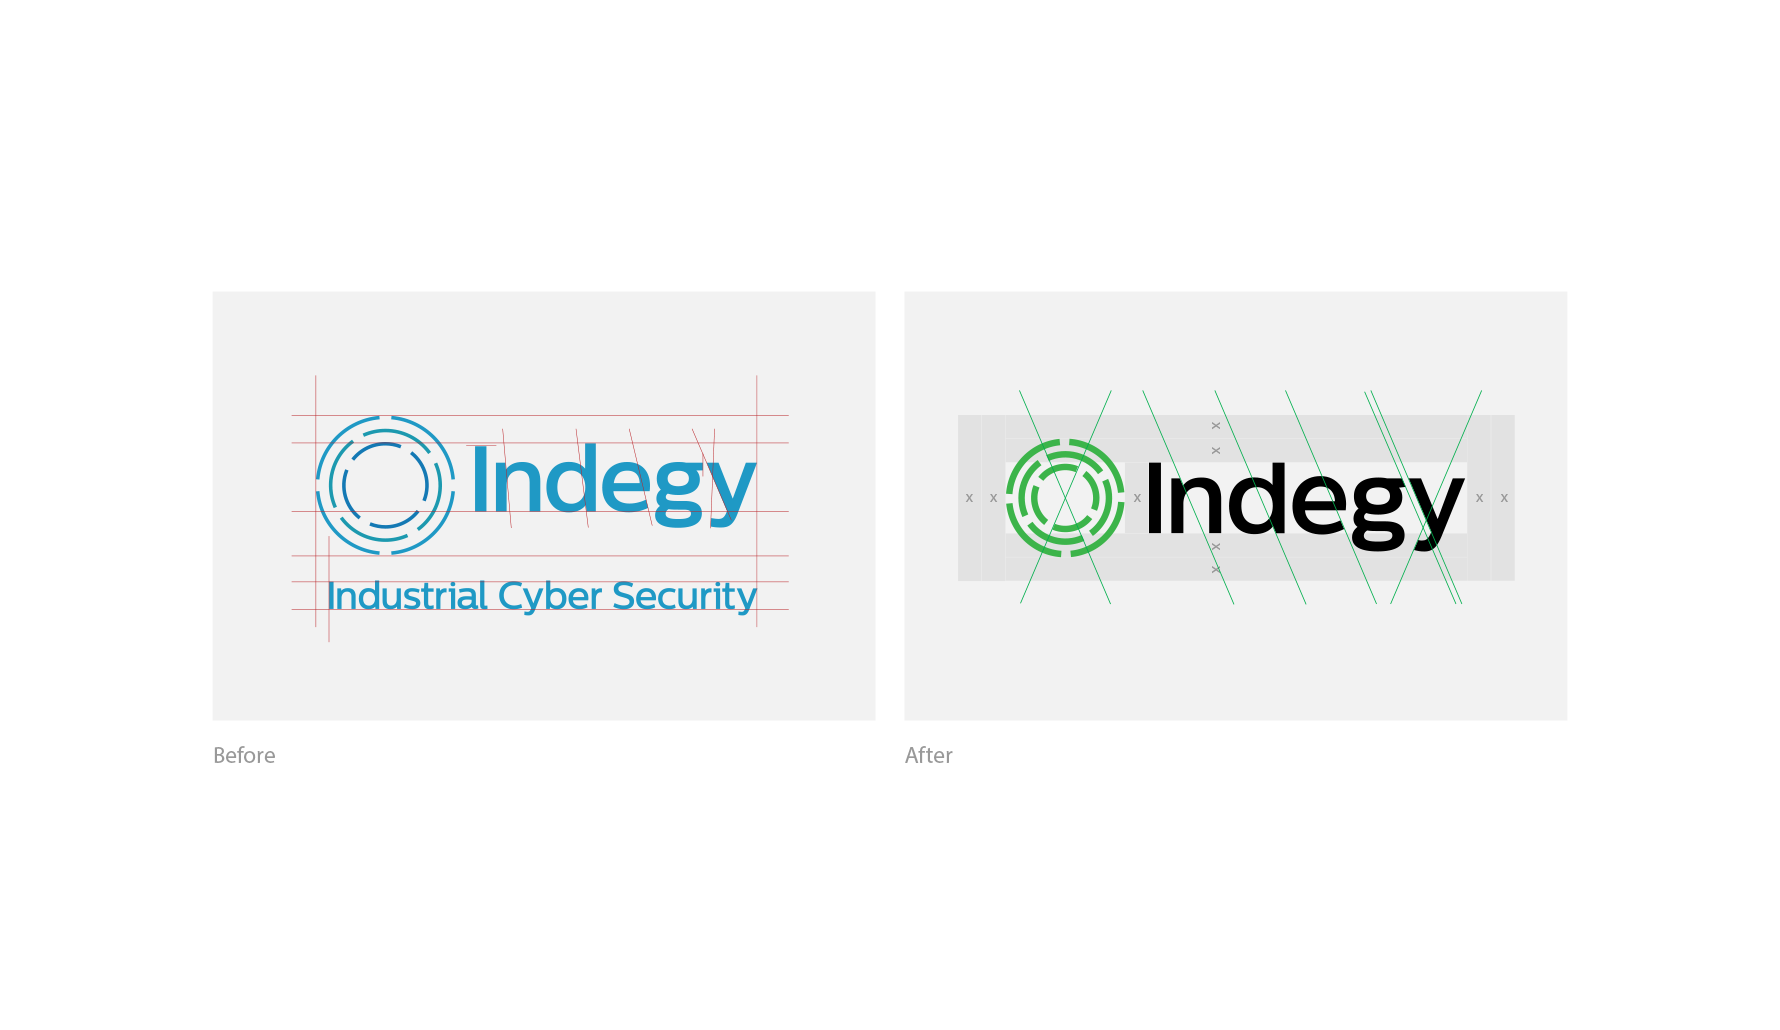 Indegy Brand Update & Guidelines side-by-side comparison of before and after old logo vs new logo